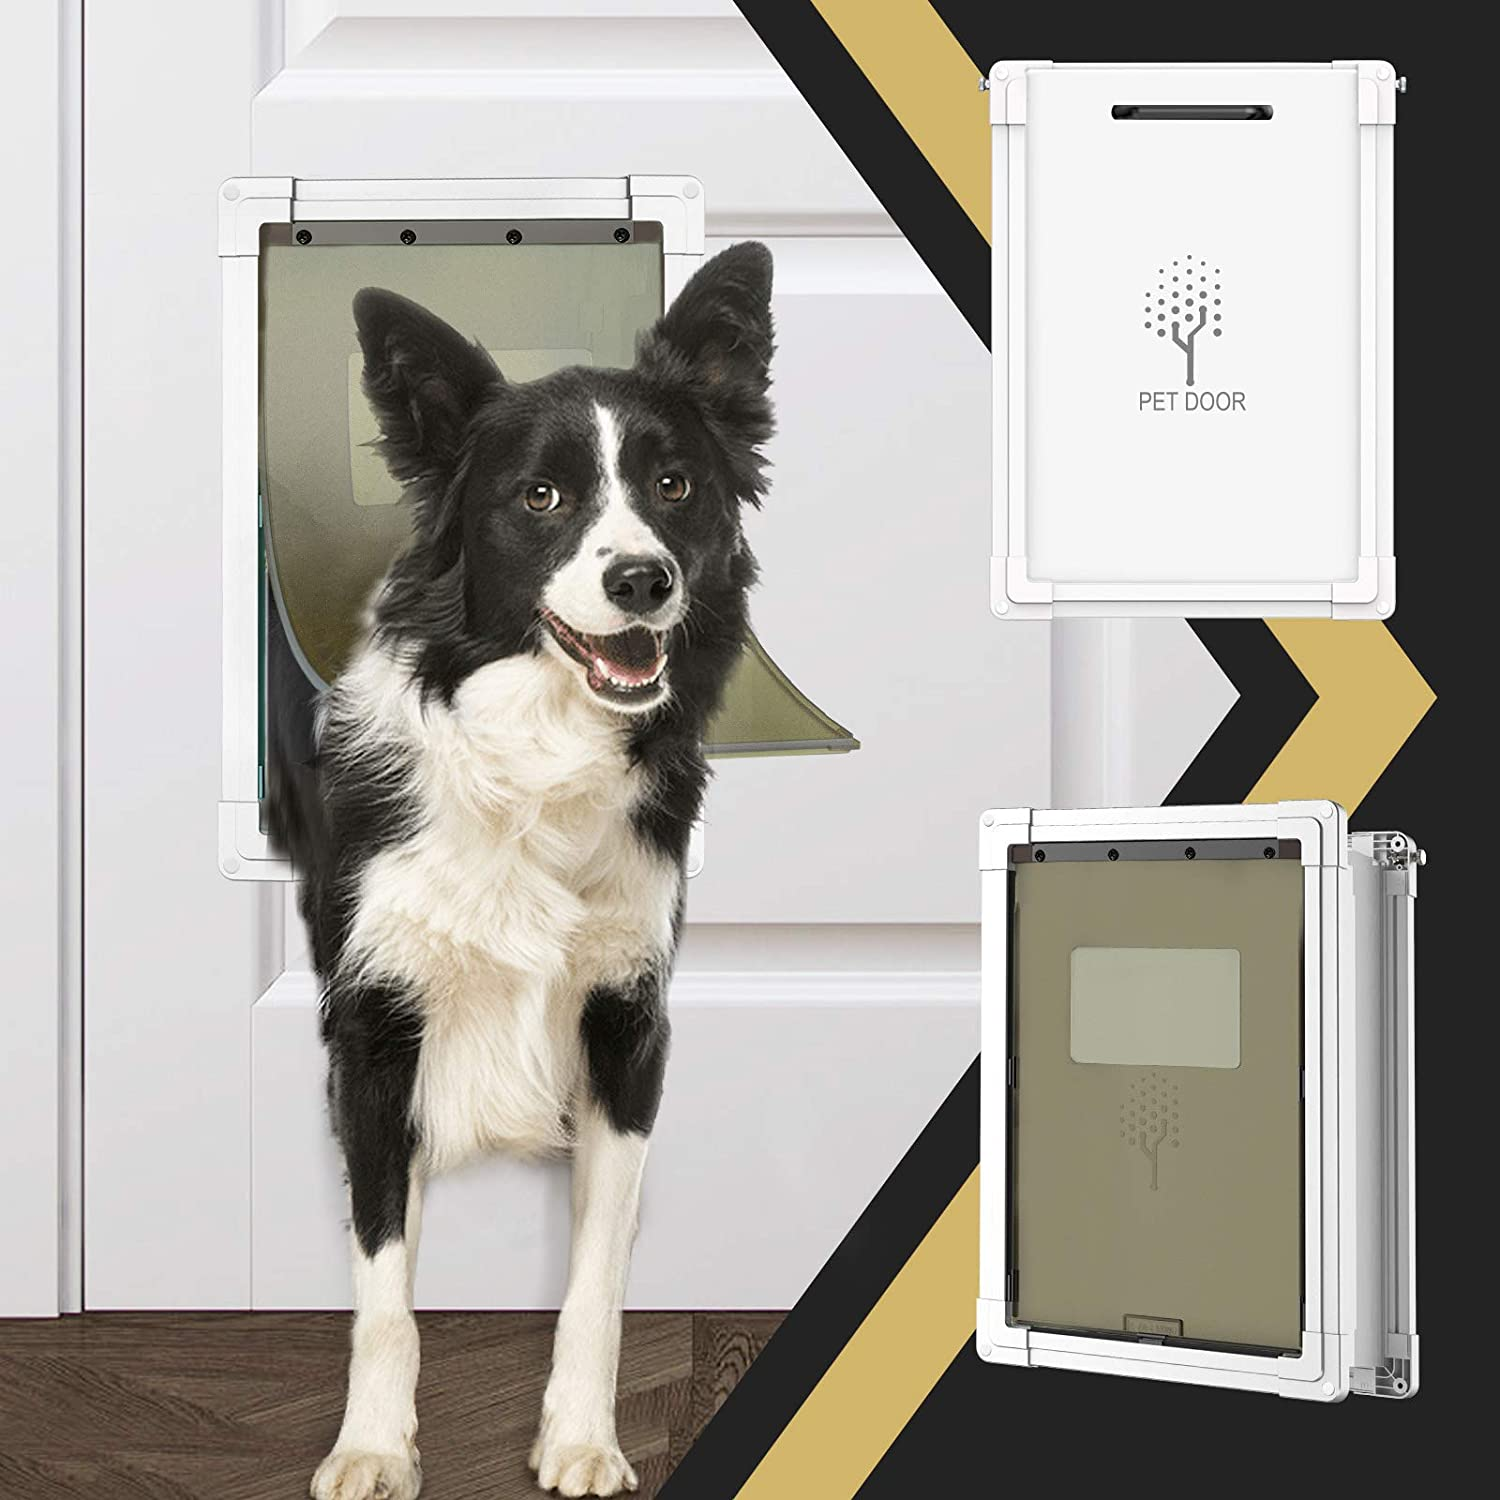 Dog Door Jacksonville Mall Pet for Finally resale start Dogs and Exter Cats Doggie Medium